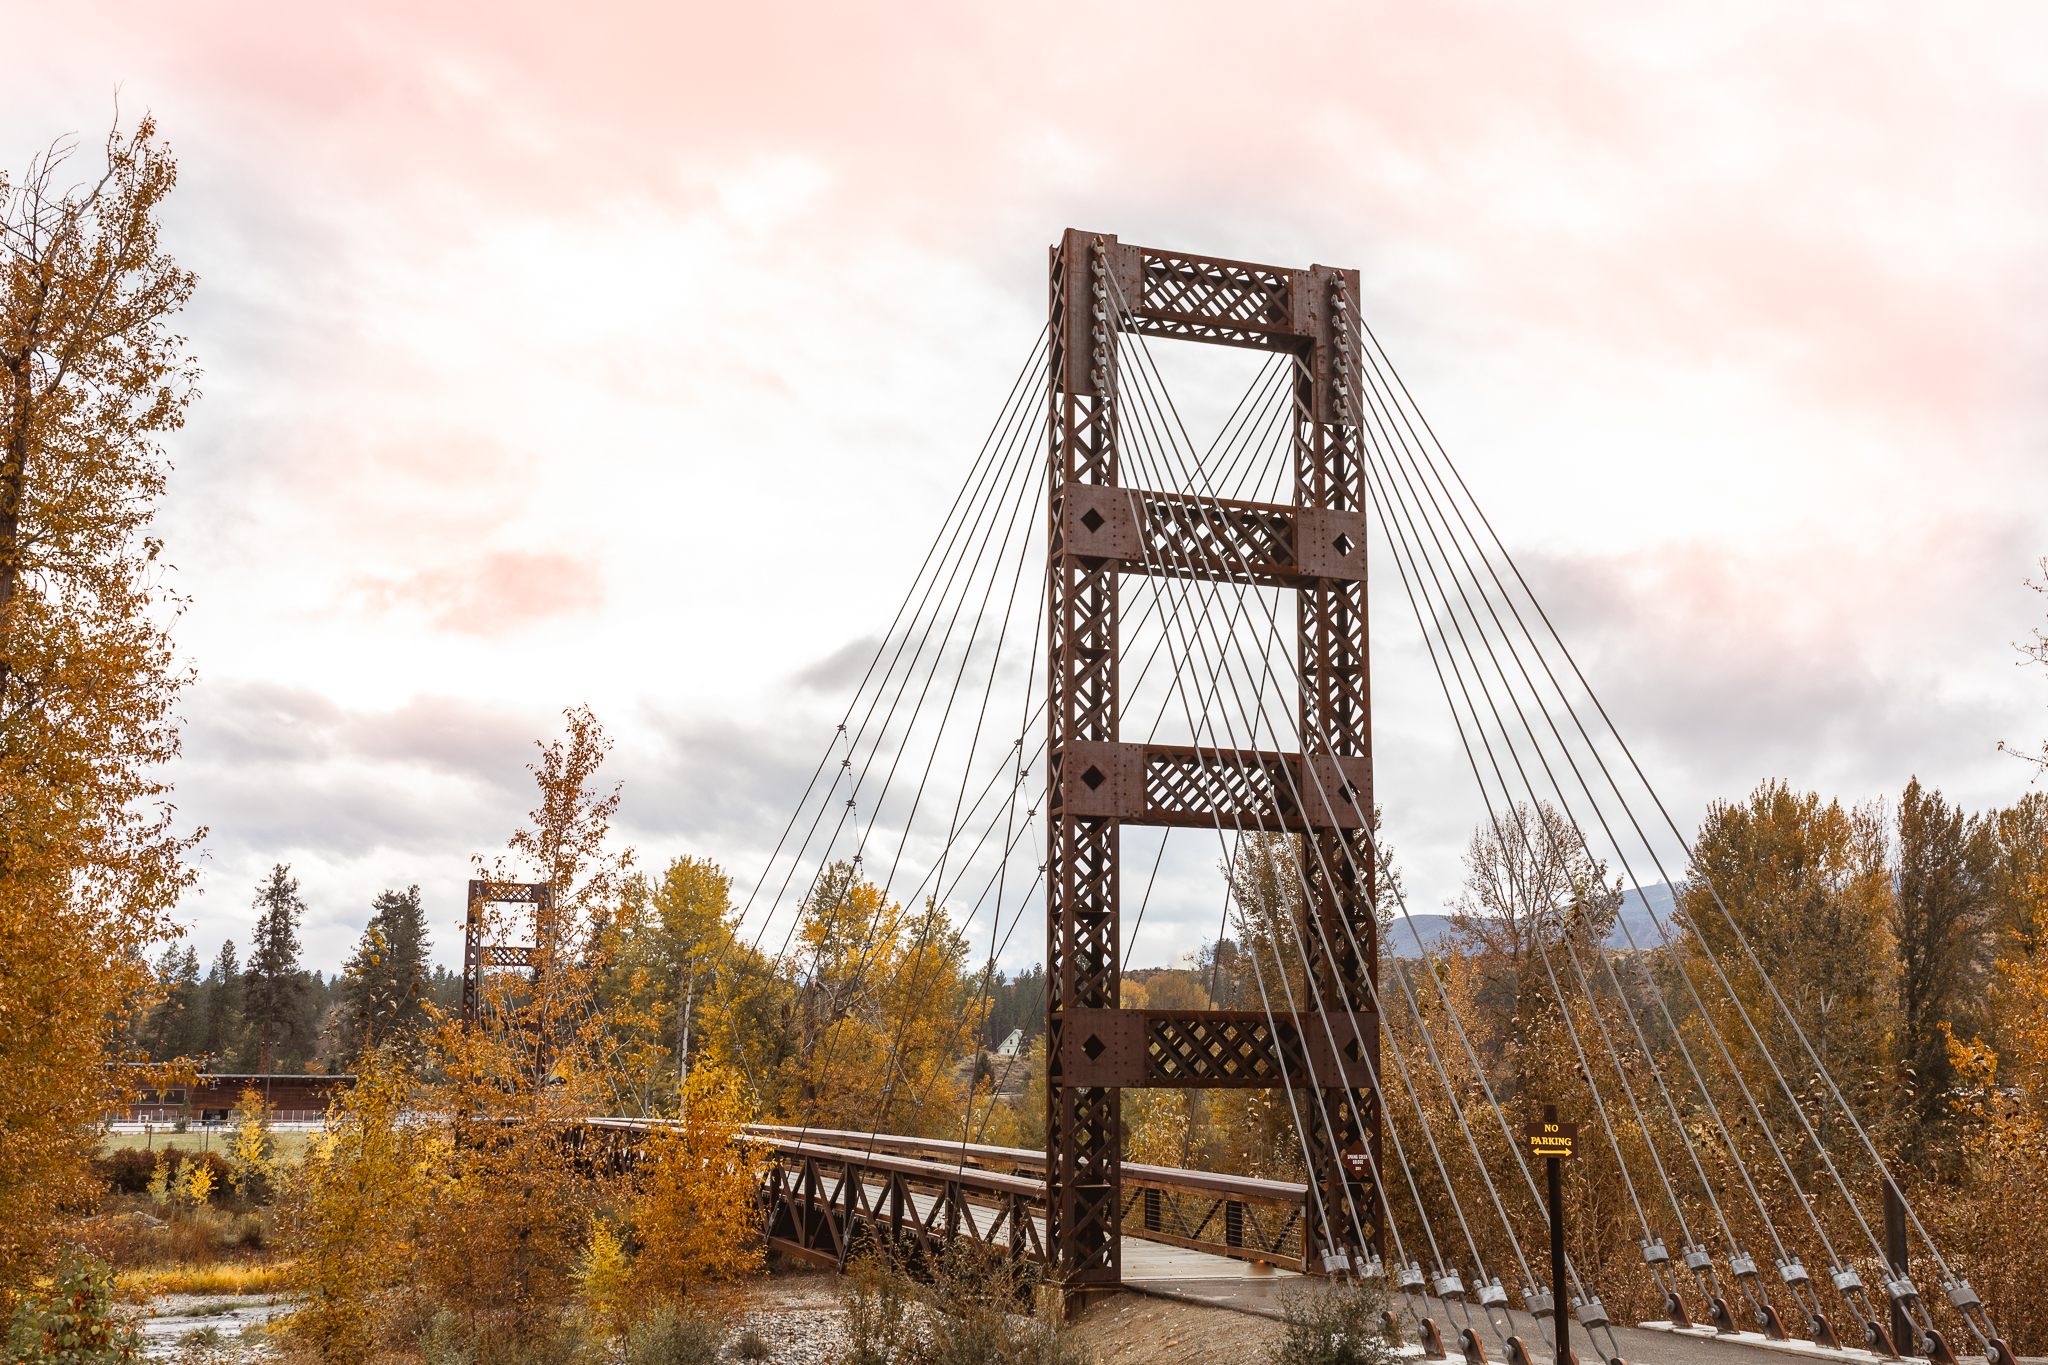 Spring Creek Bridge Downtown western town winthrop washington photo by Anne Young